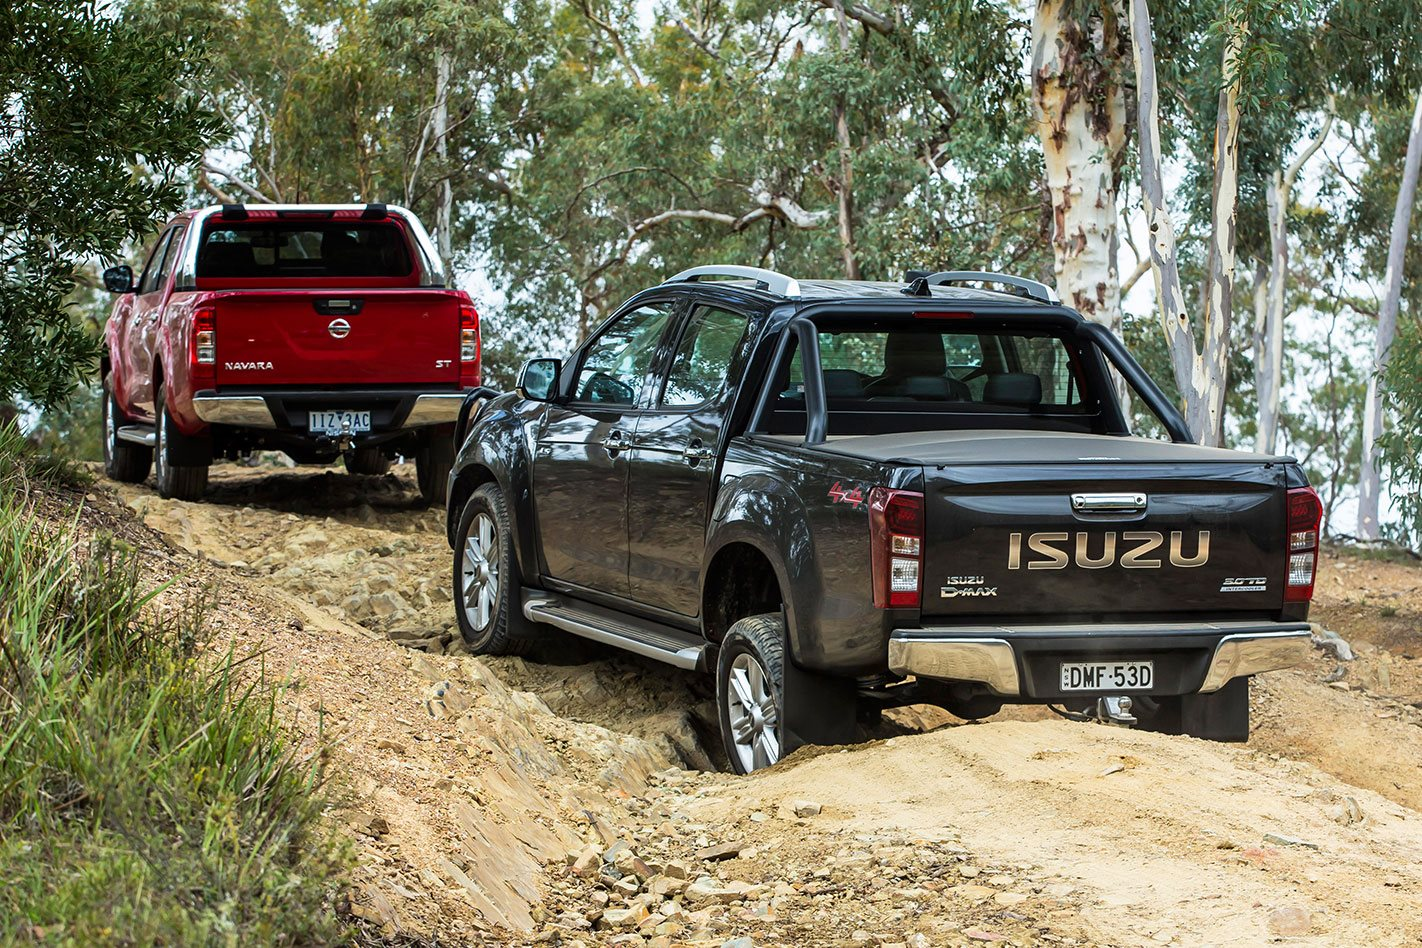 D-MAX vs Navara The Verdict